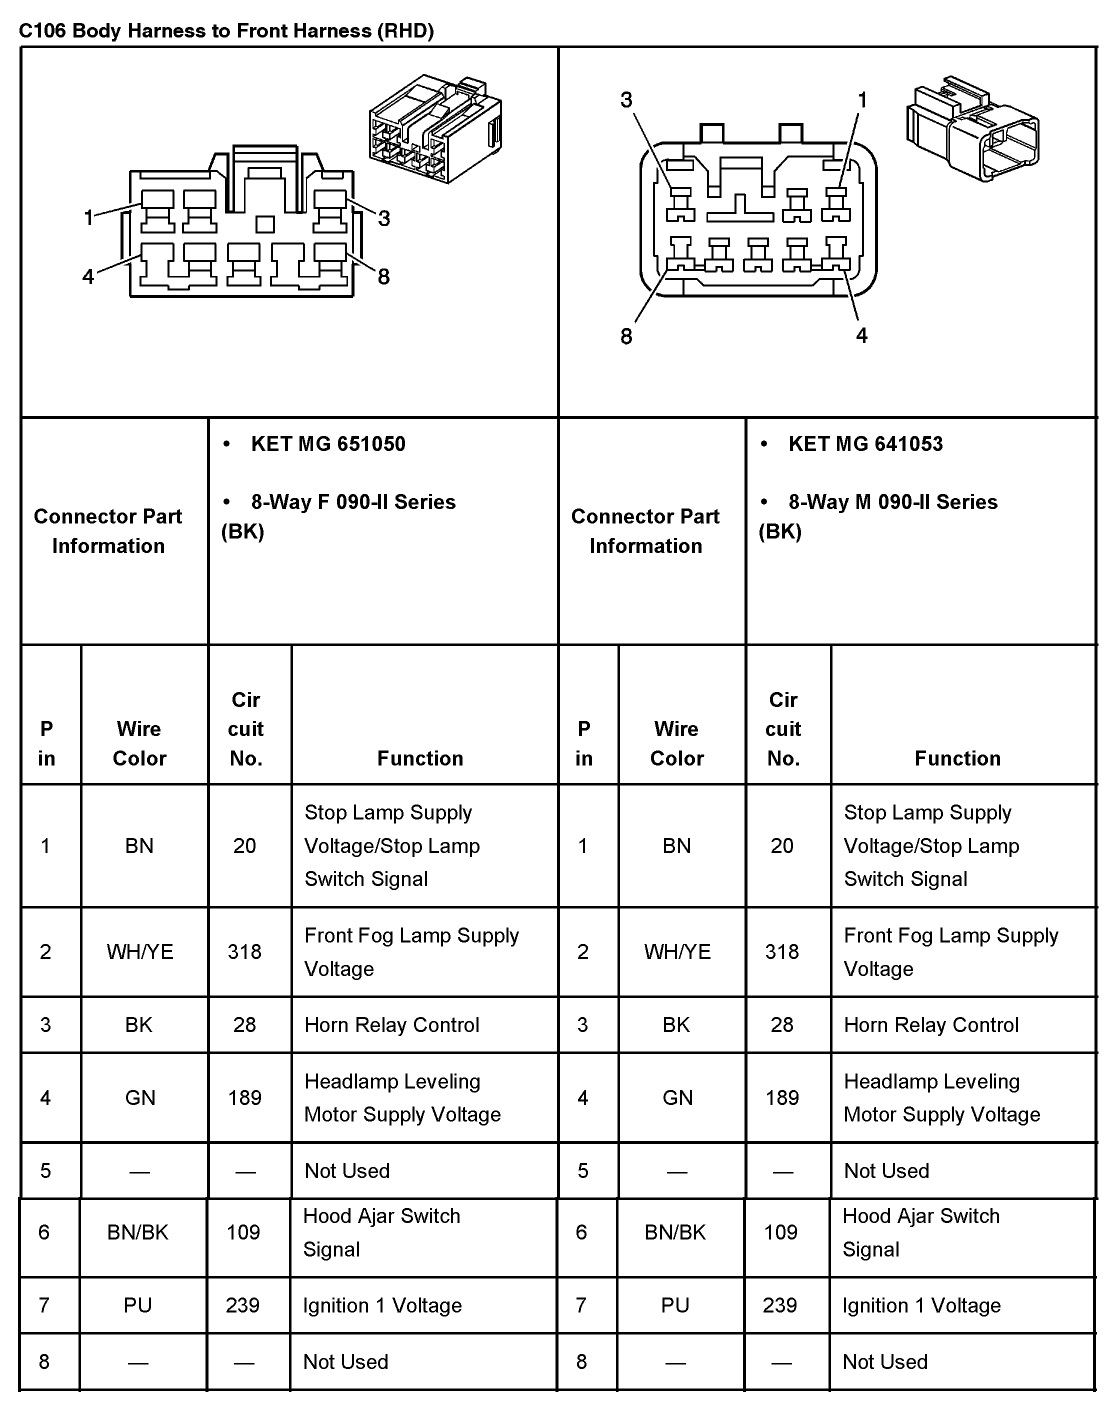 7331d1383704576 2005 aveo master connector list diagrams conn3 jpg 2005 aveo master connector list and diagrams 2010 chevy aveo headlight wiring diagram at bakdesigns.co